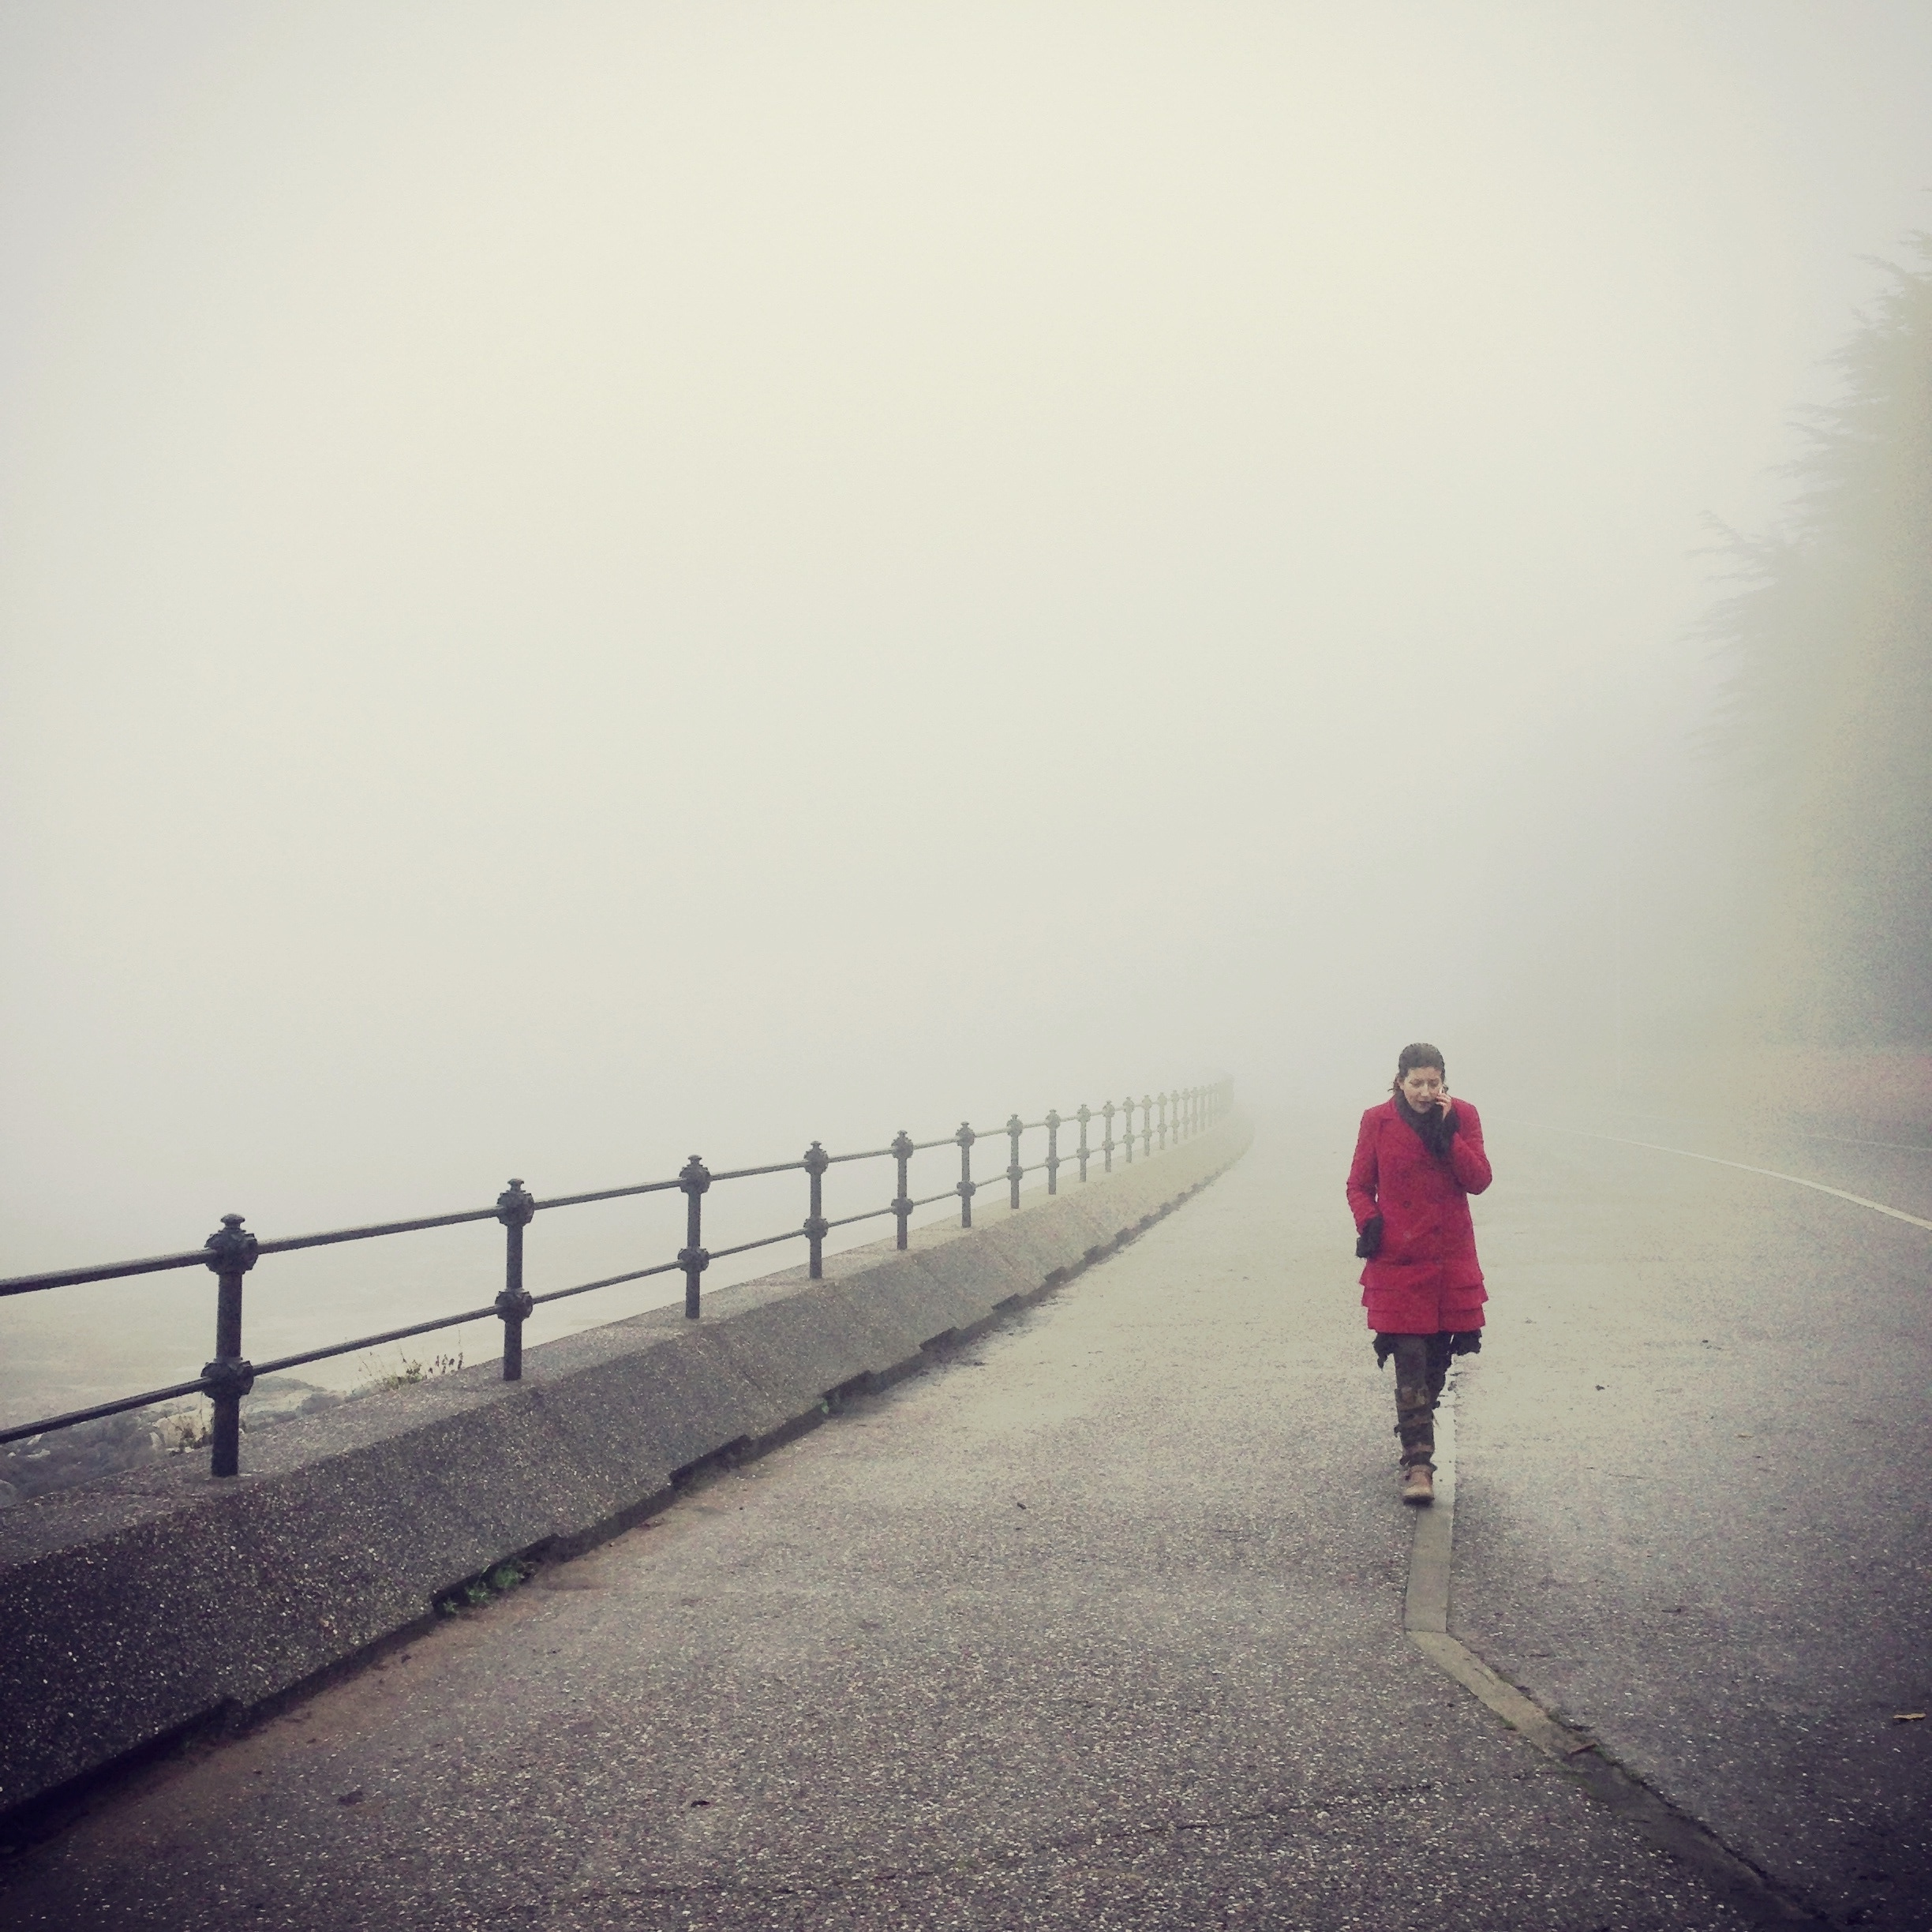 A woman in a red coat emerges from the fog by the river.